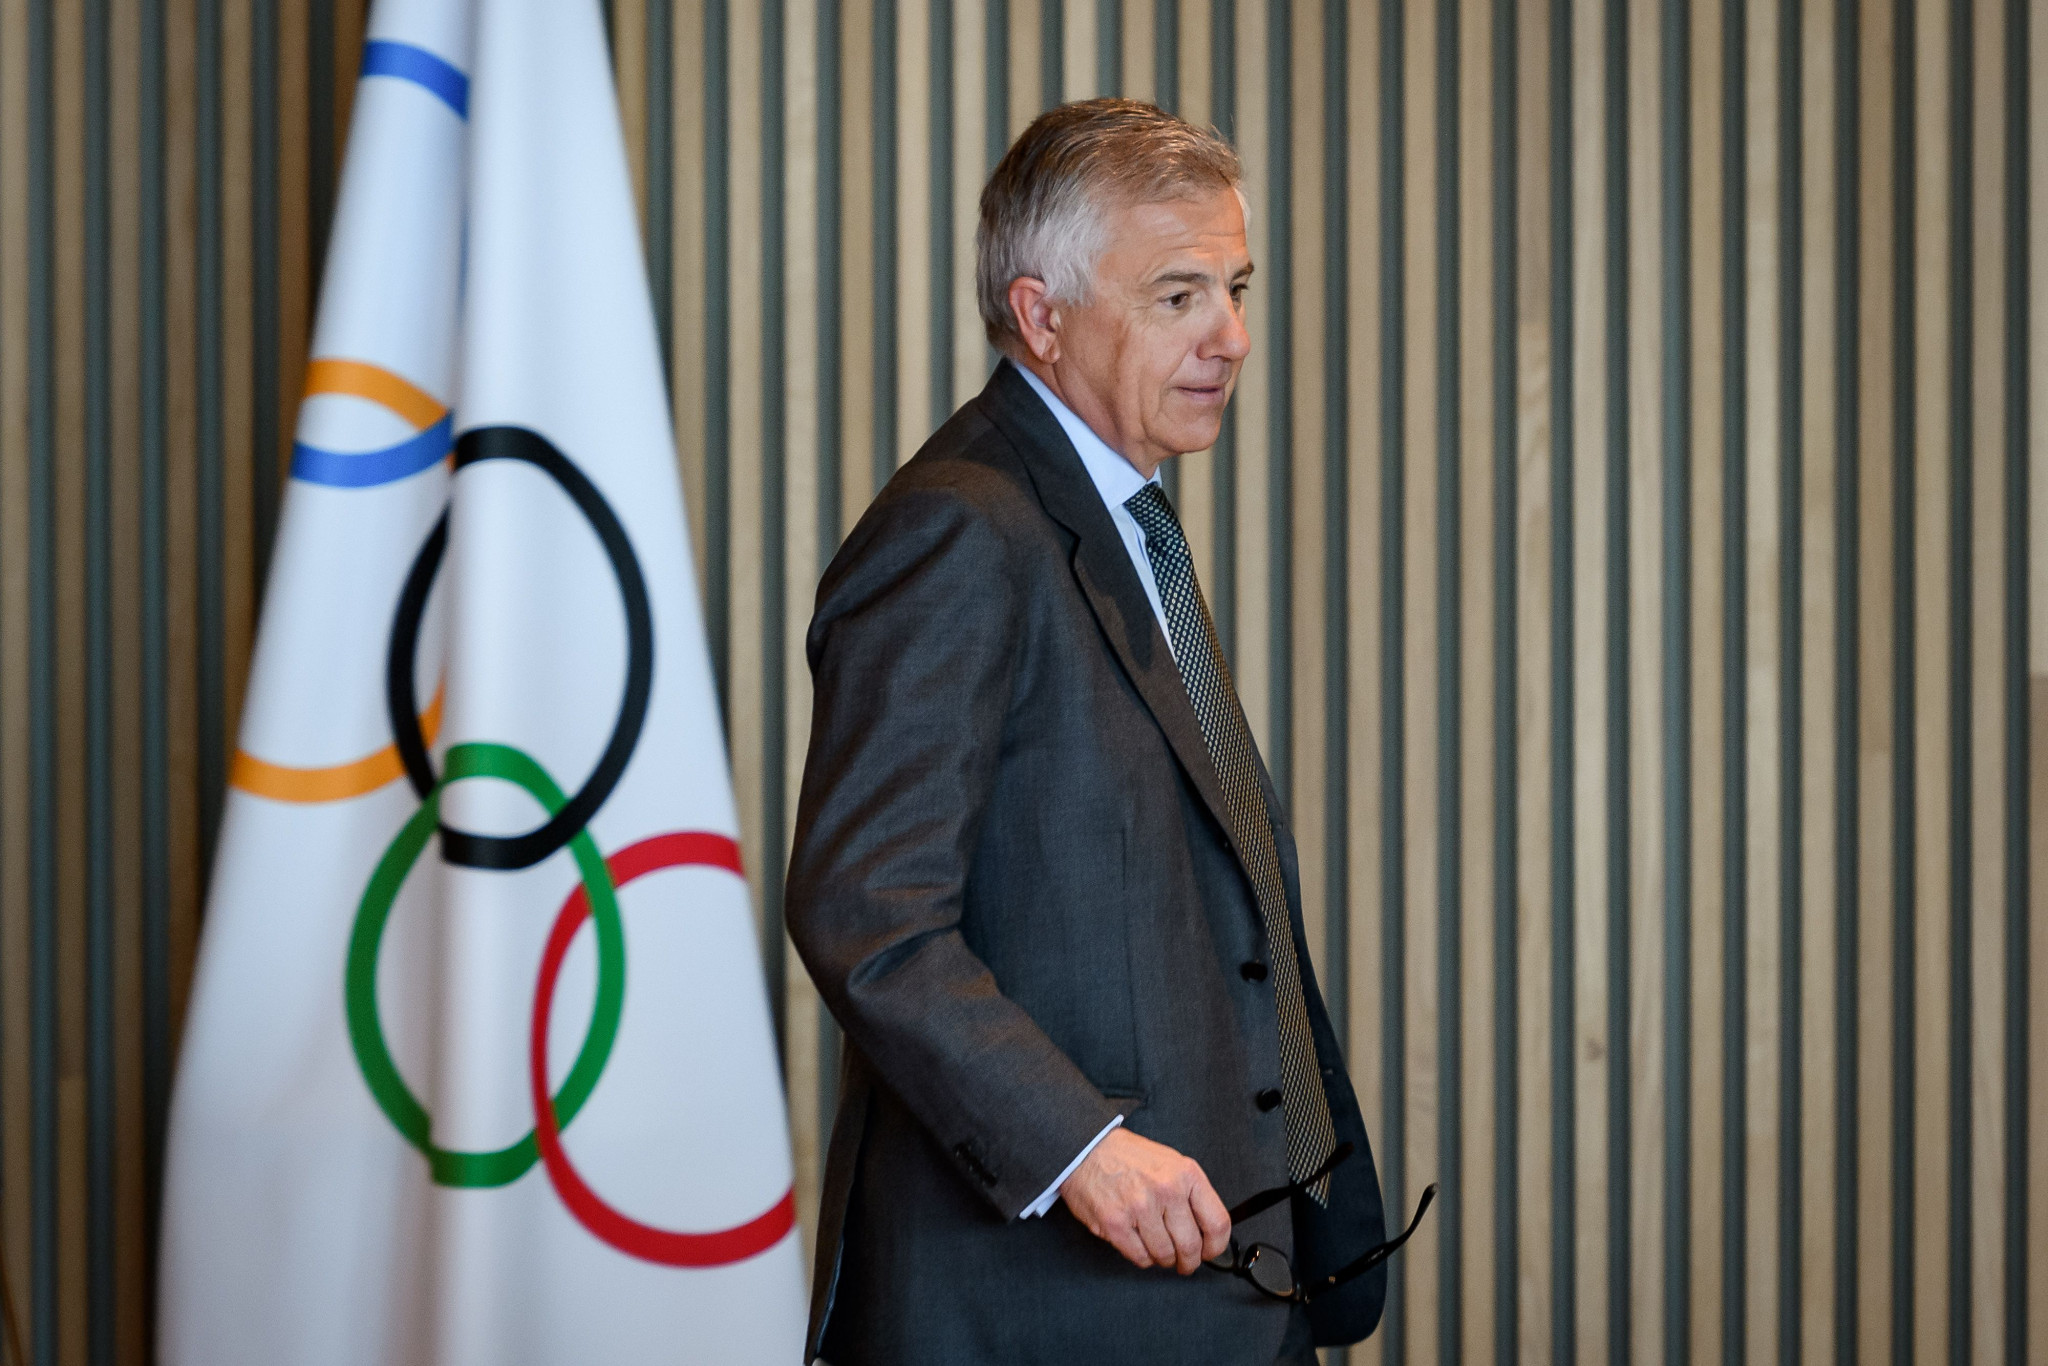 Juan Antonio Samaranch has said the candidacy would need backing from all public administrations ©Getty Images